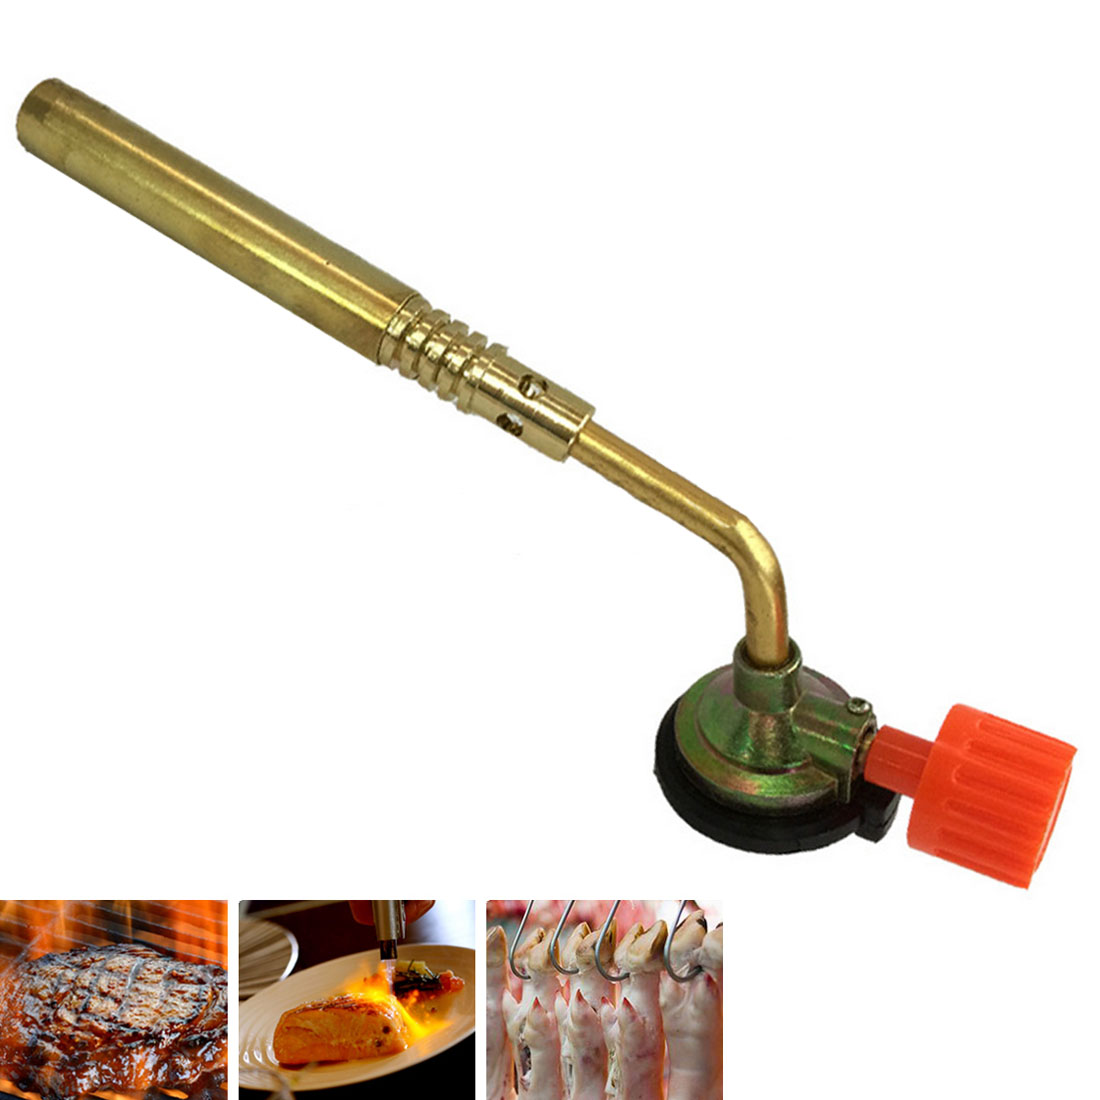 Butane Gas Welding Soldering Pipe Blow Torch Flamethrower Burner Camping Welding BBQ Tool Brass For Welder Equipment